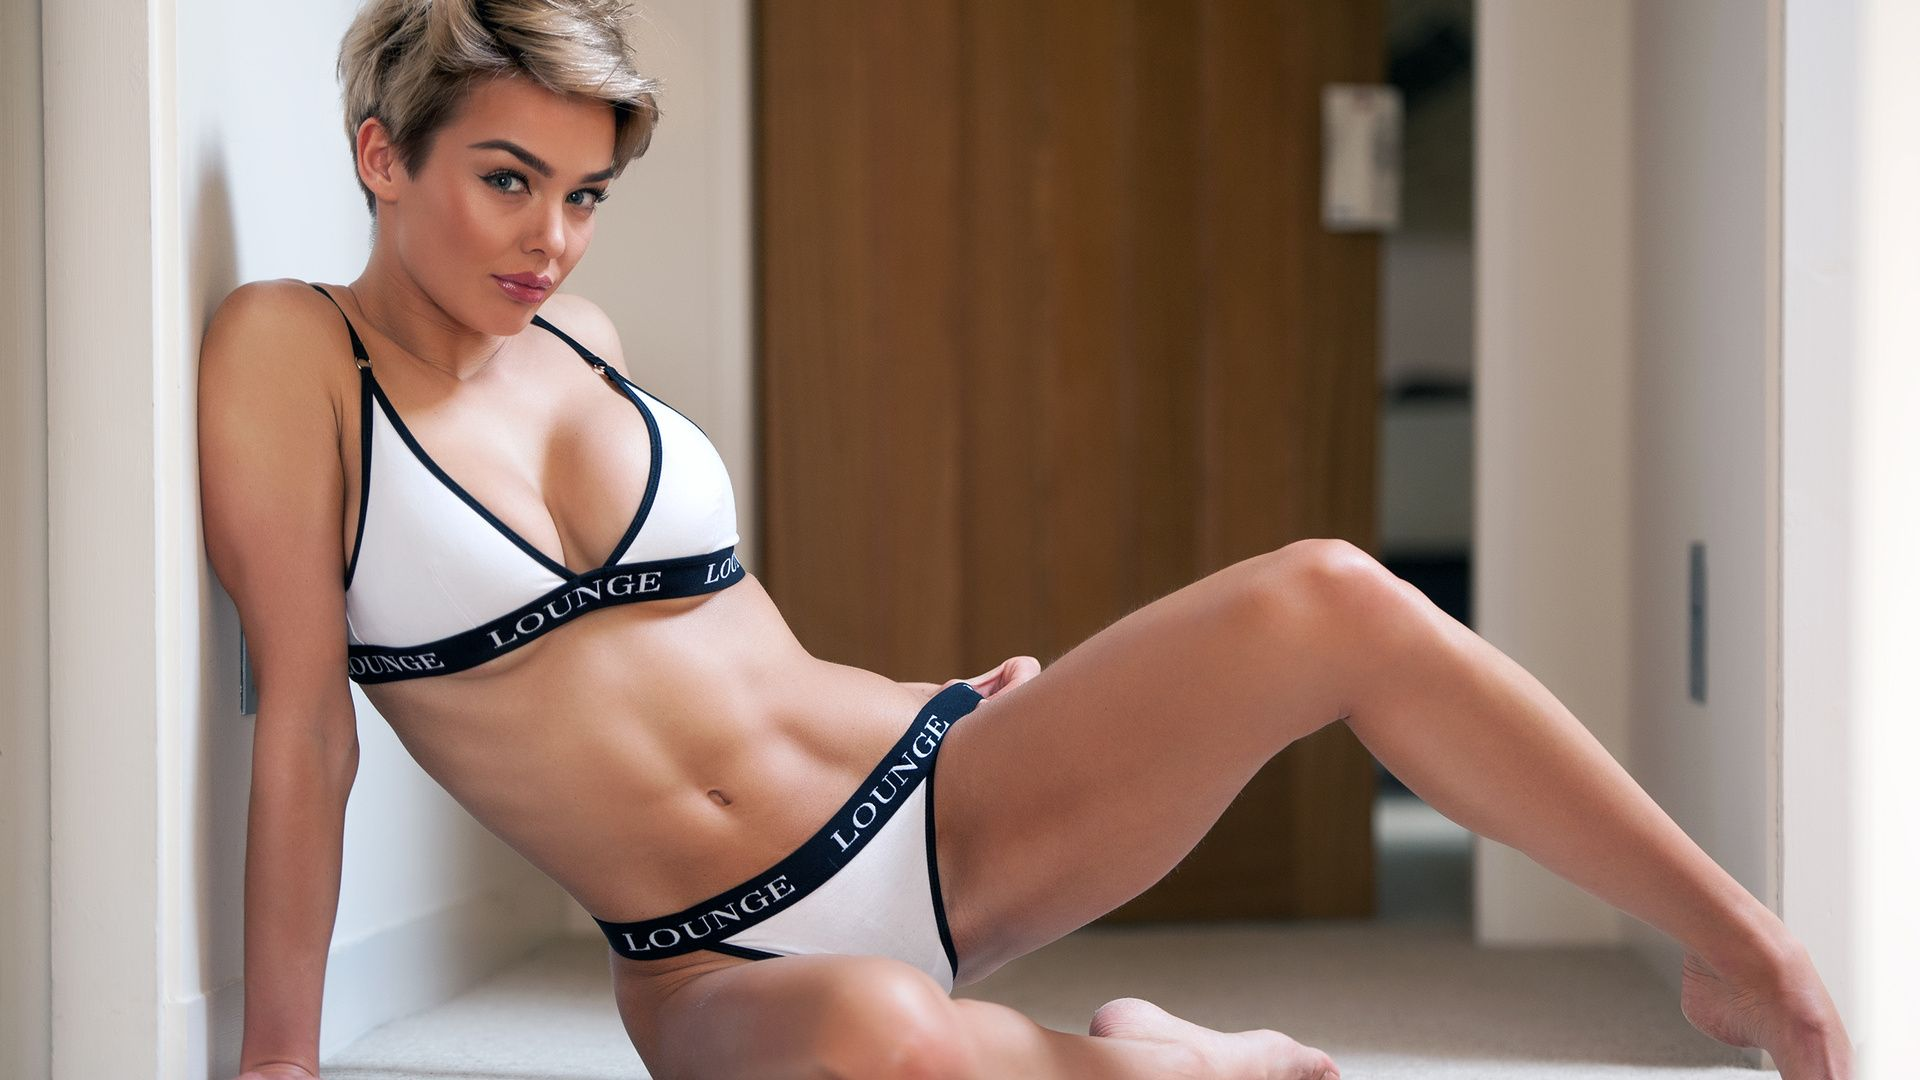 sexy-short-haired-models-hardcore-thumbs-pics